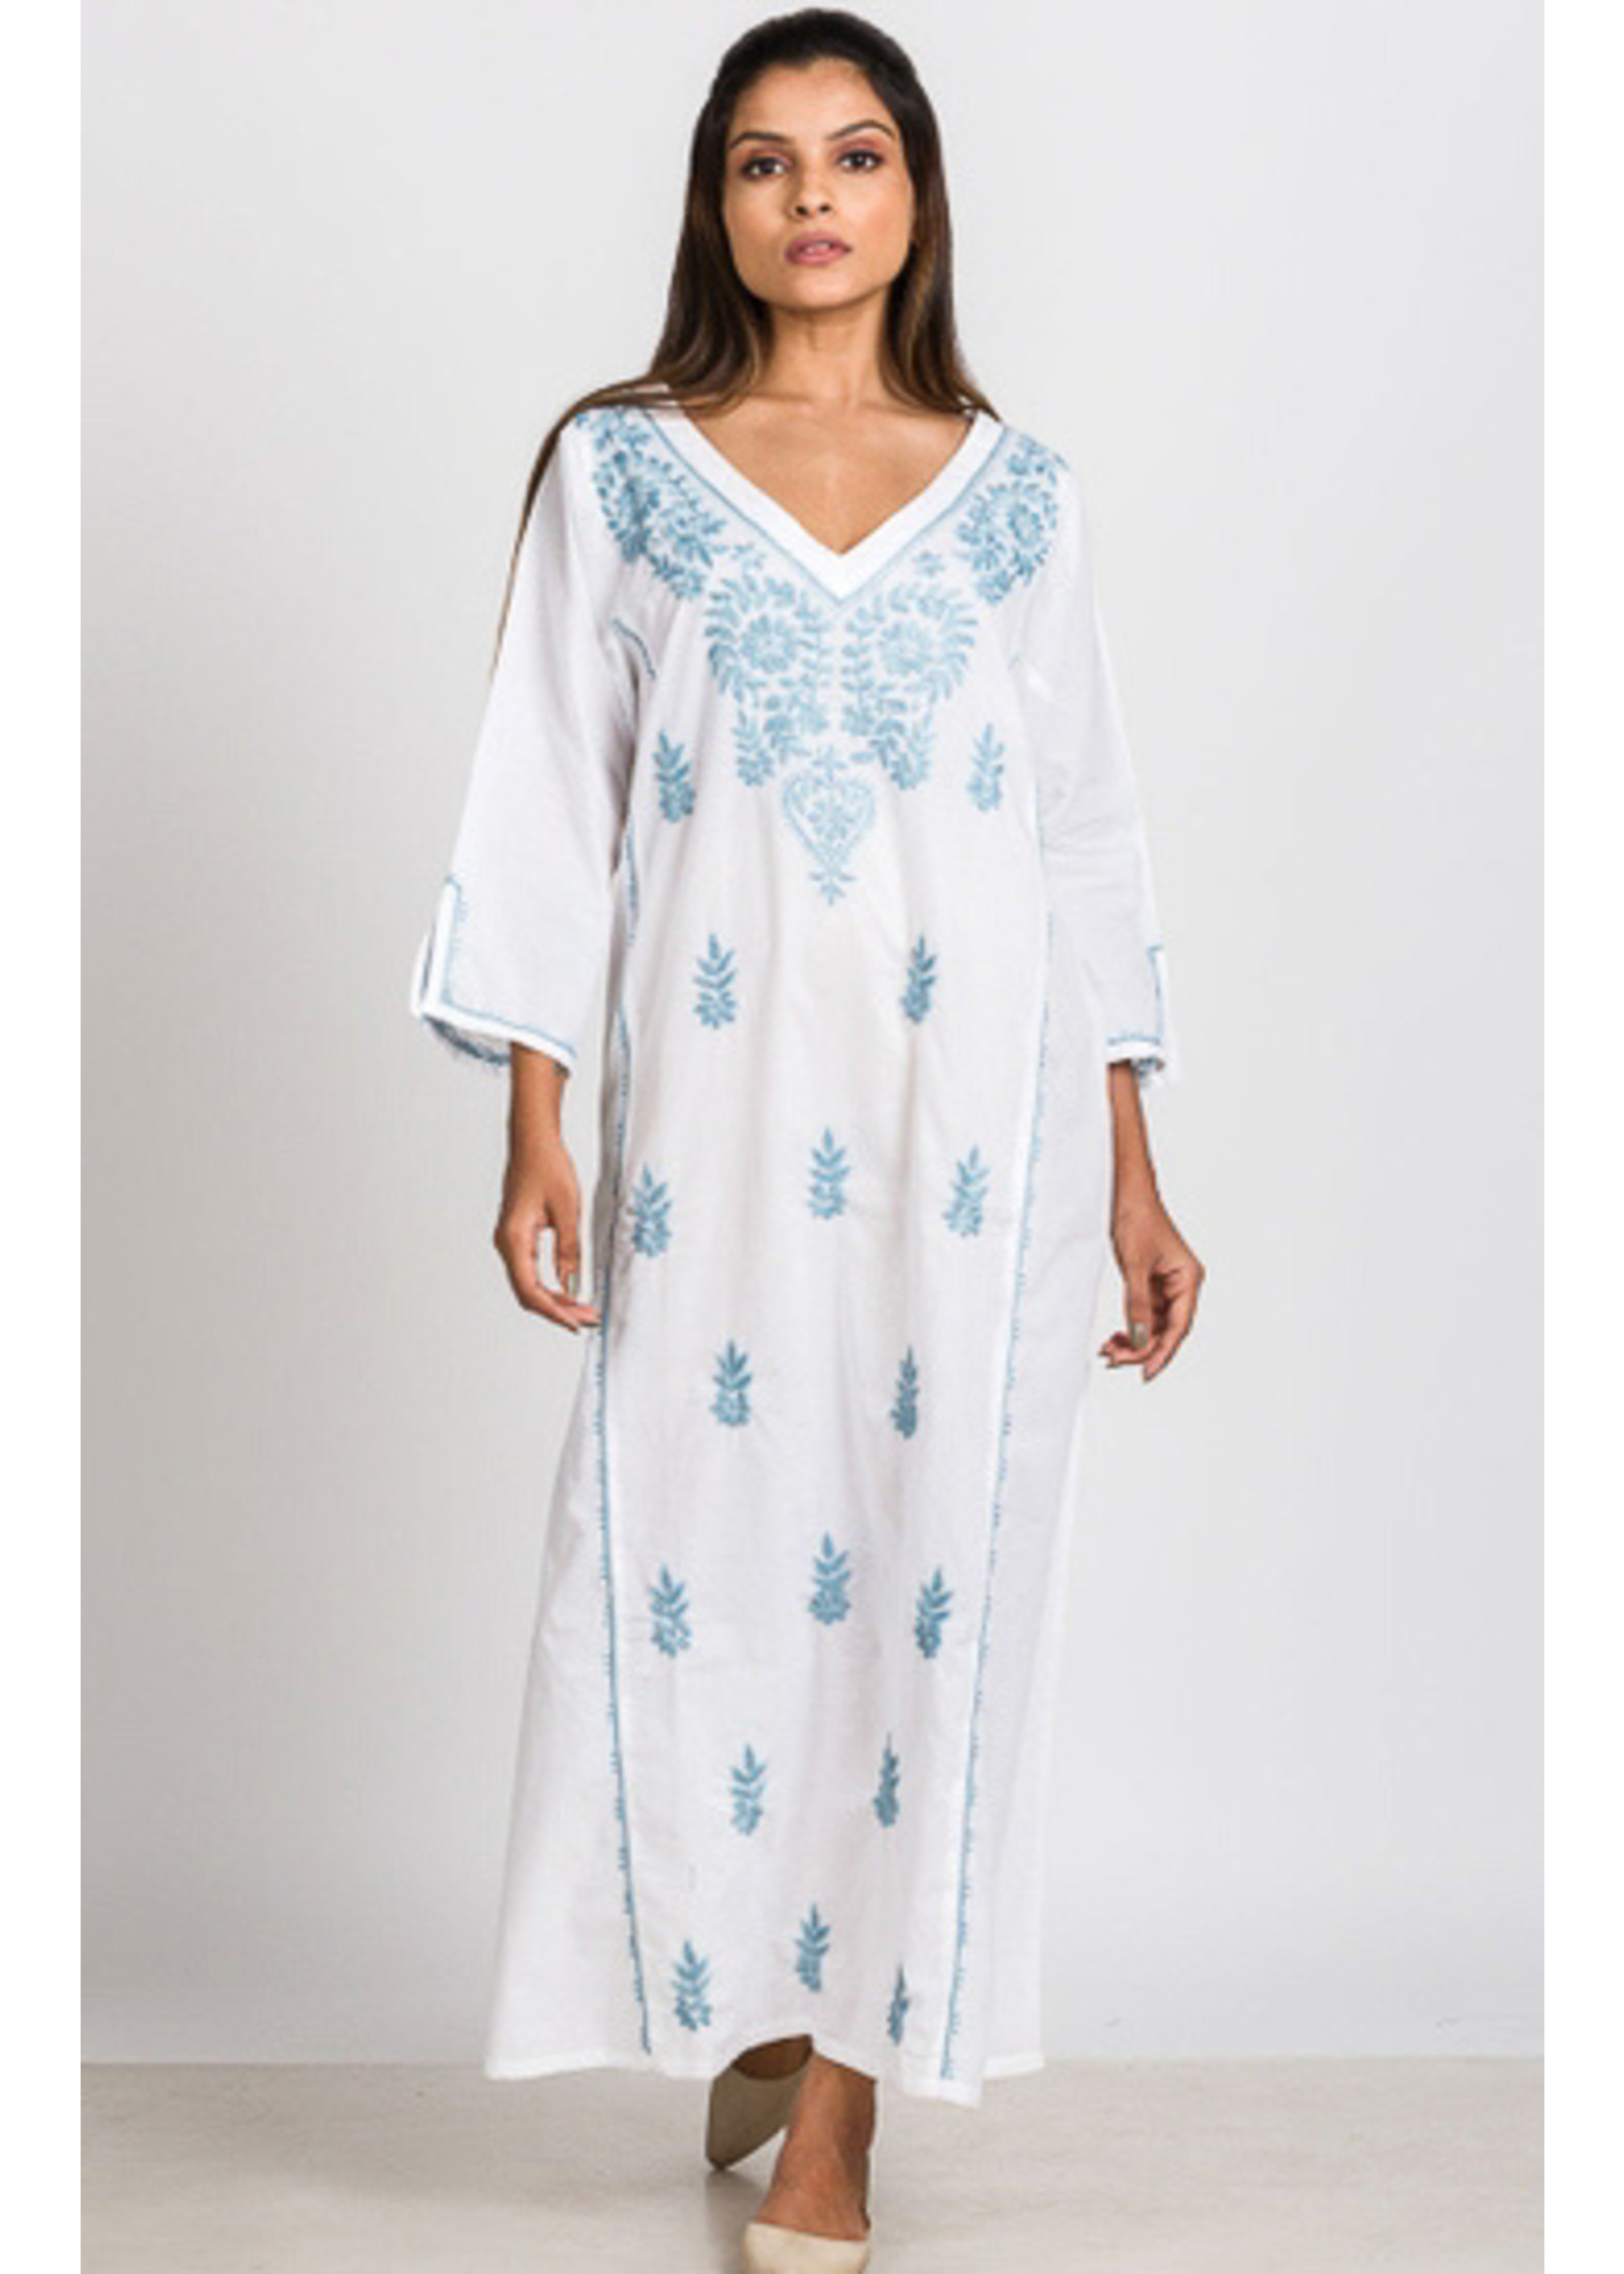 Parama Embroidered Caftans